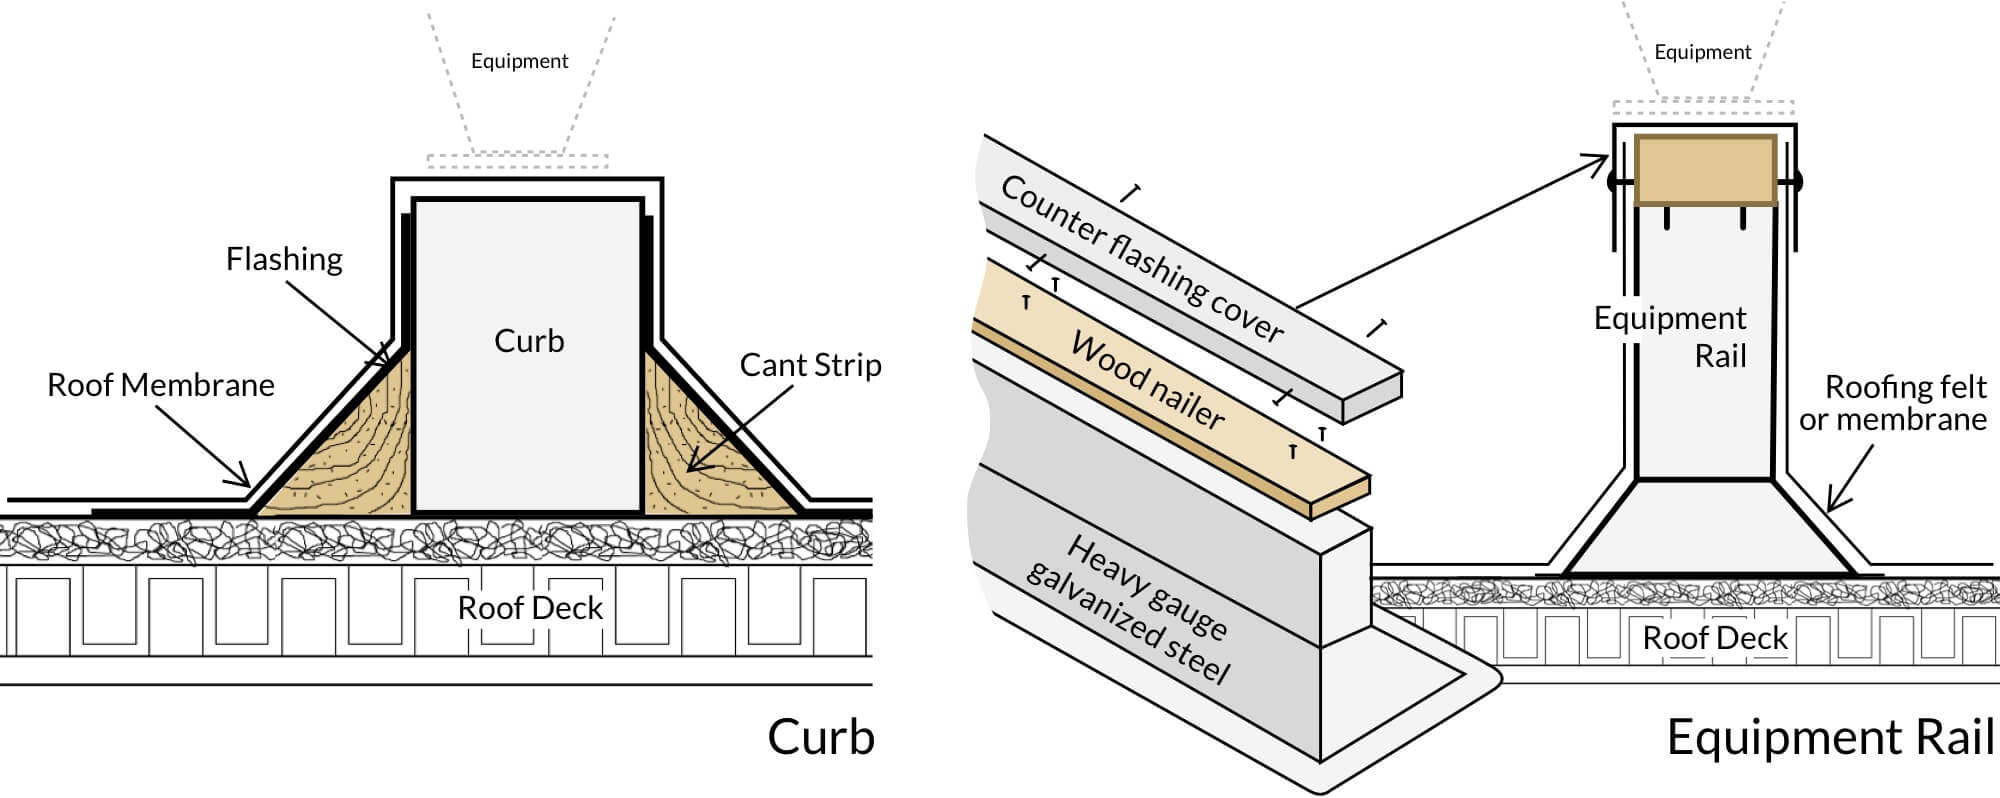 Rooftop Curb and Equipment Rail - Cross Sectional View